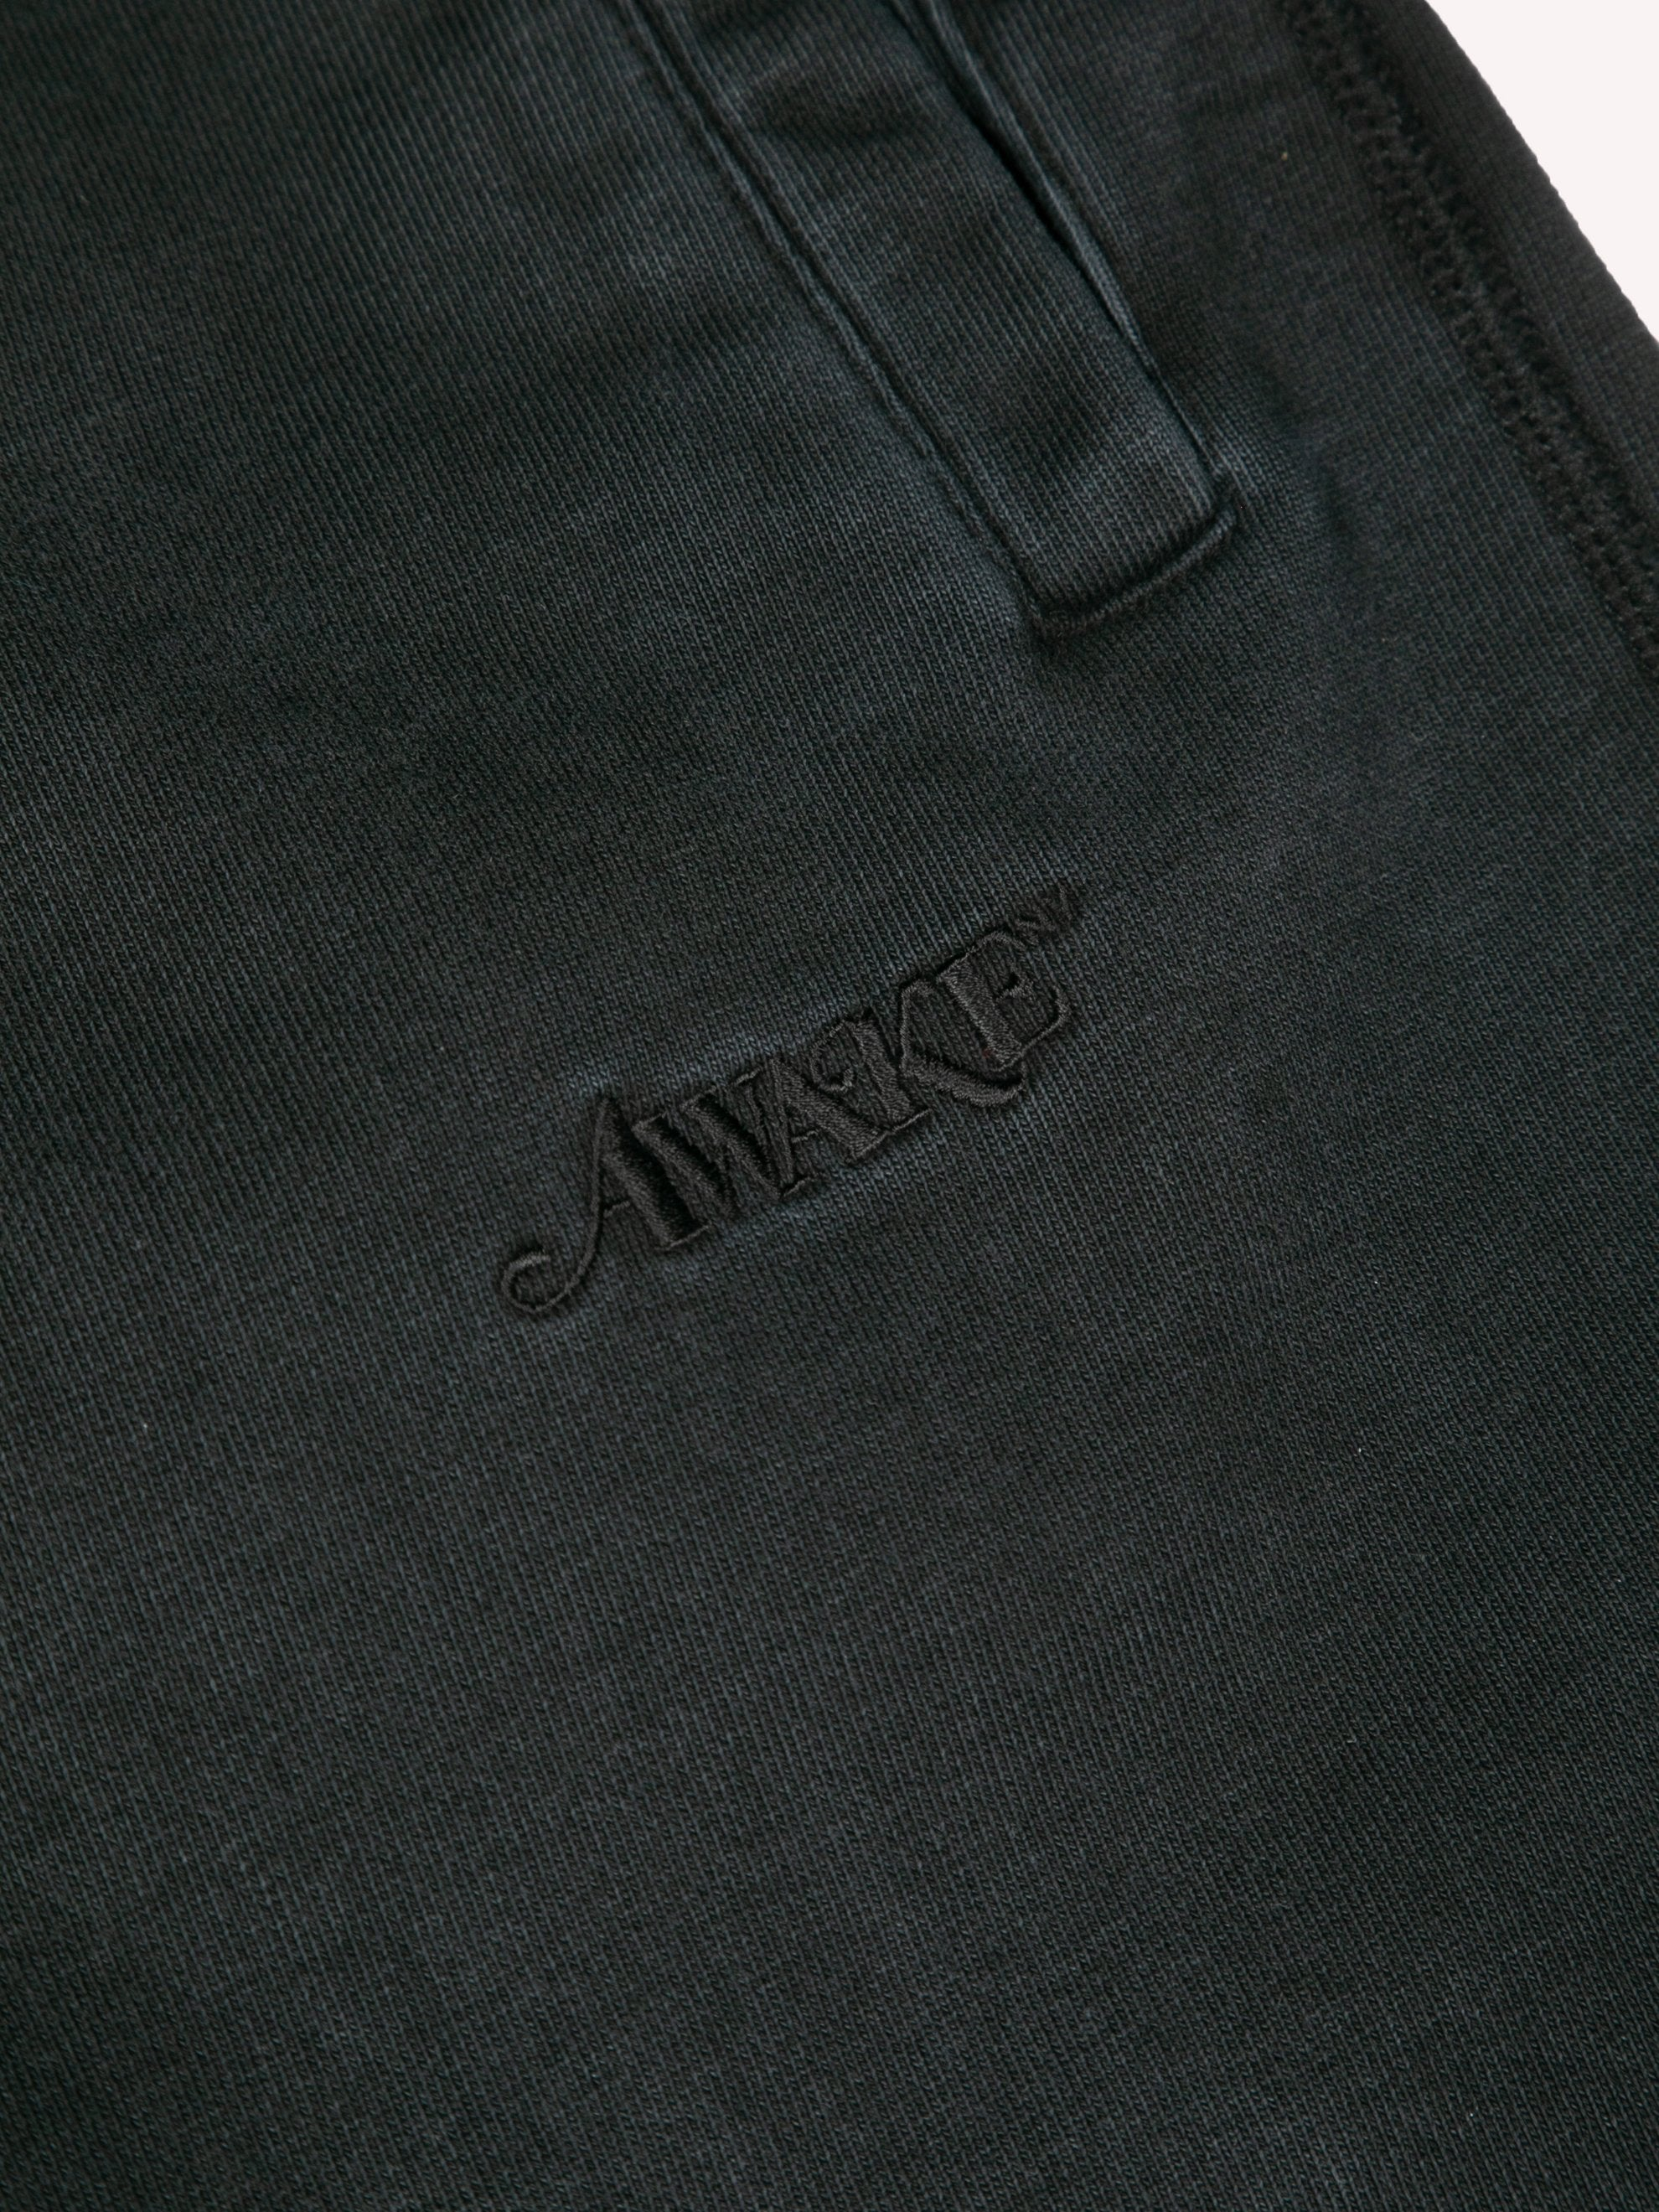 Classic Logo Embroidered Sweatpant